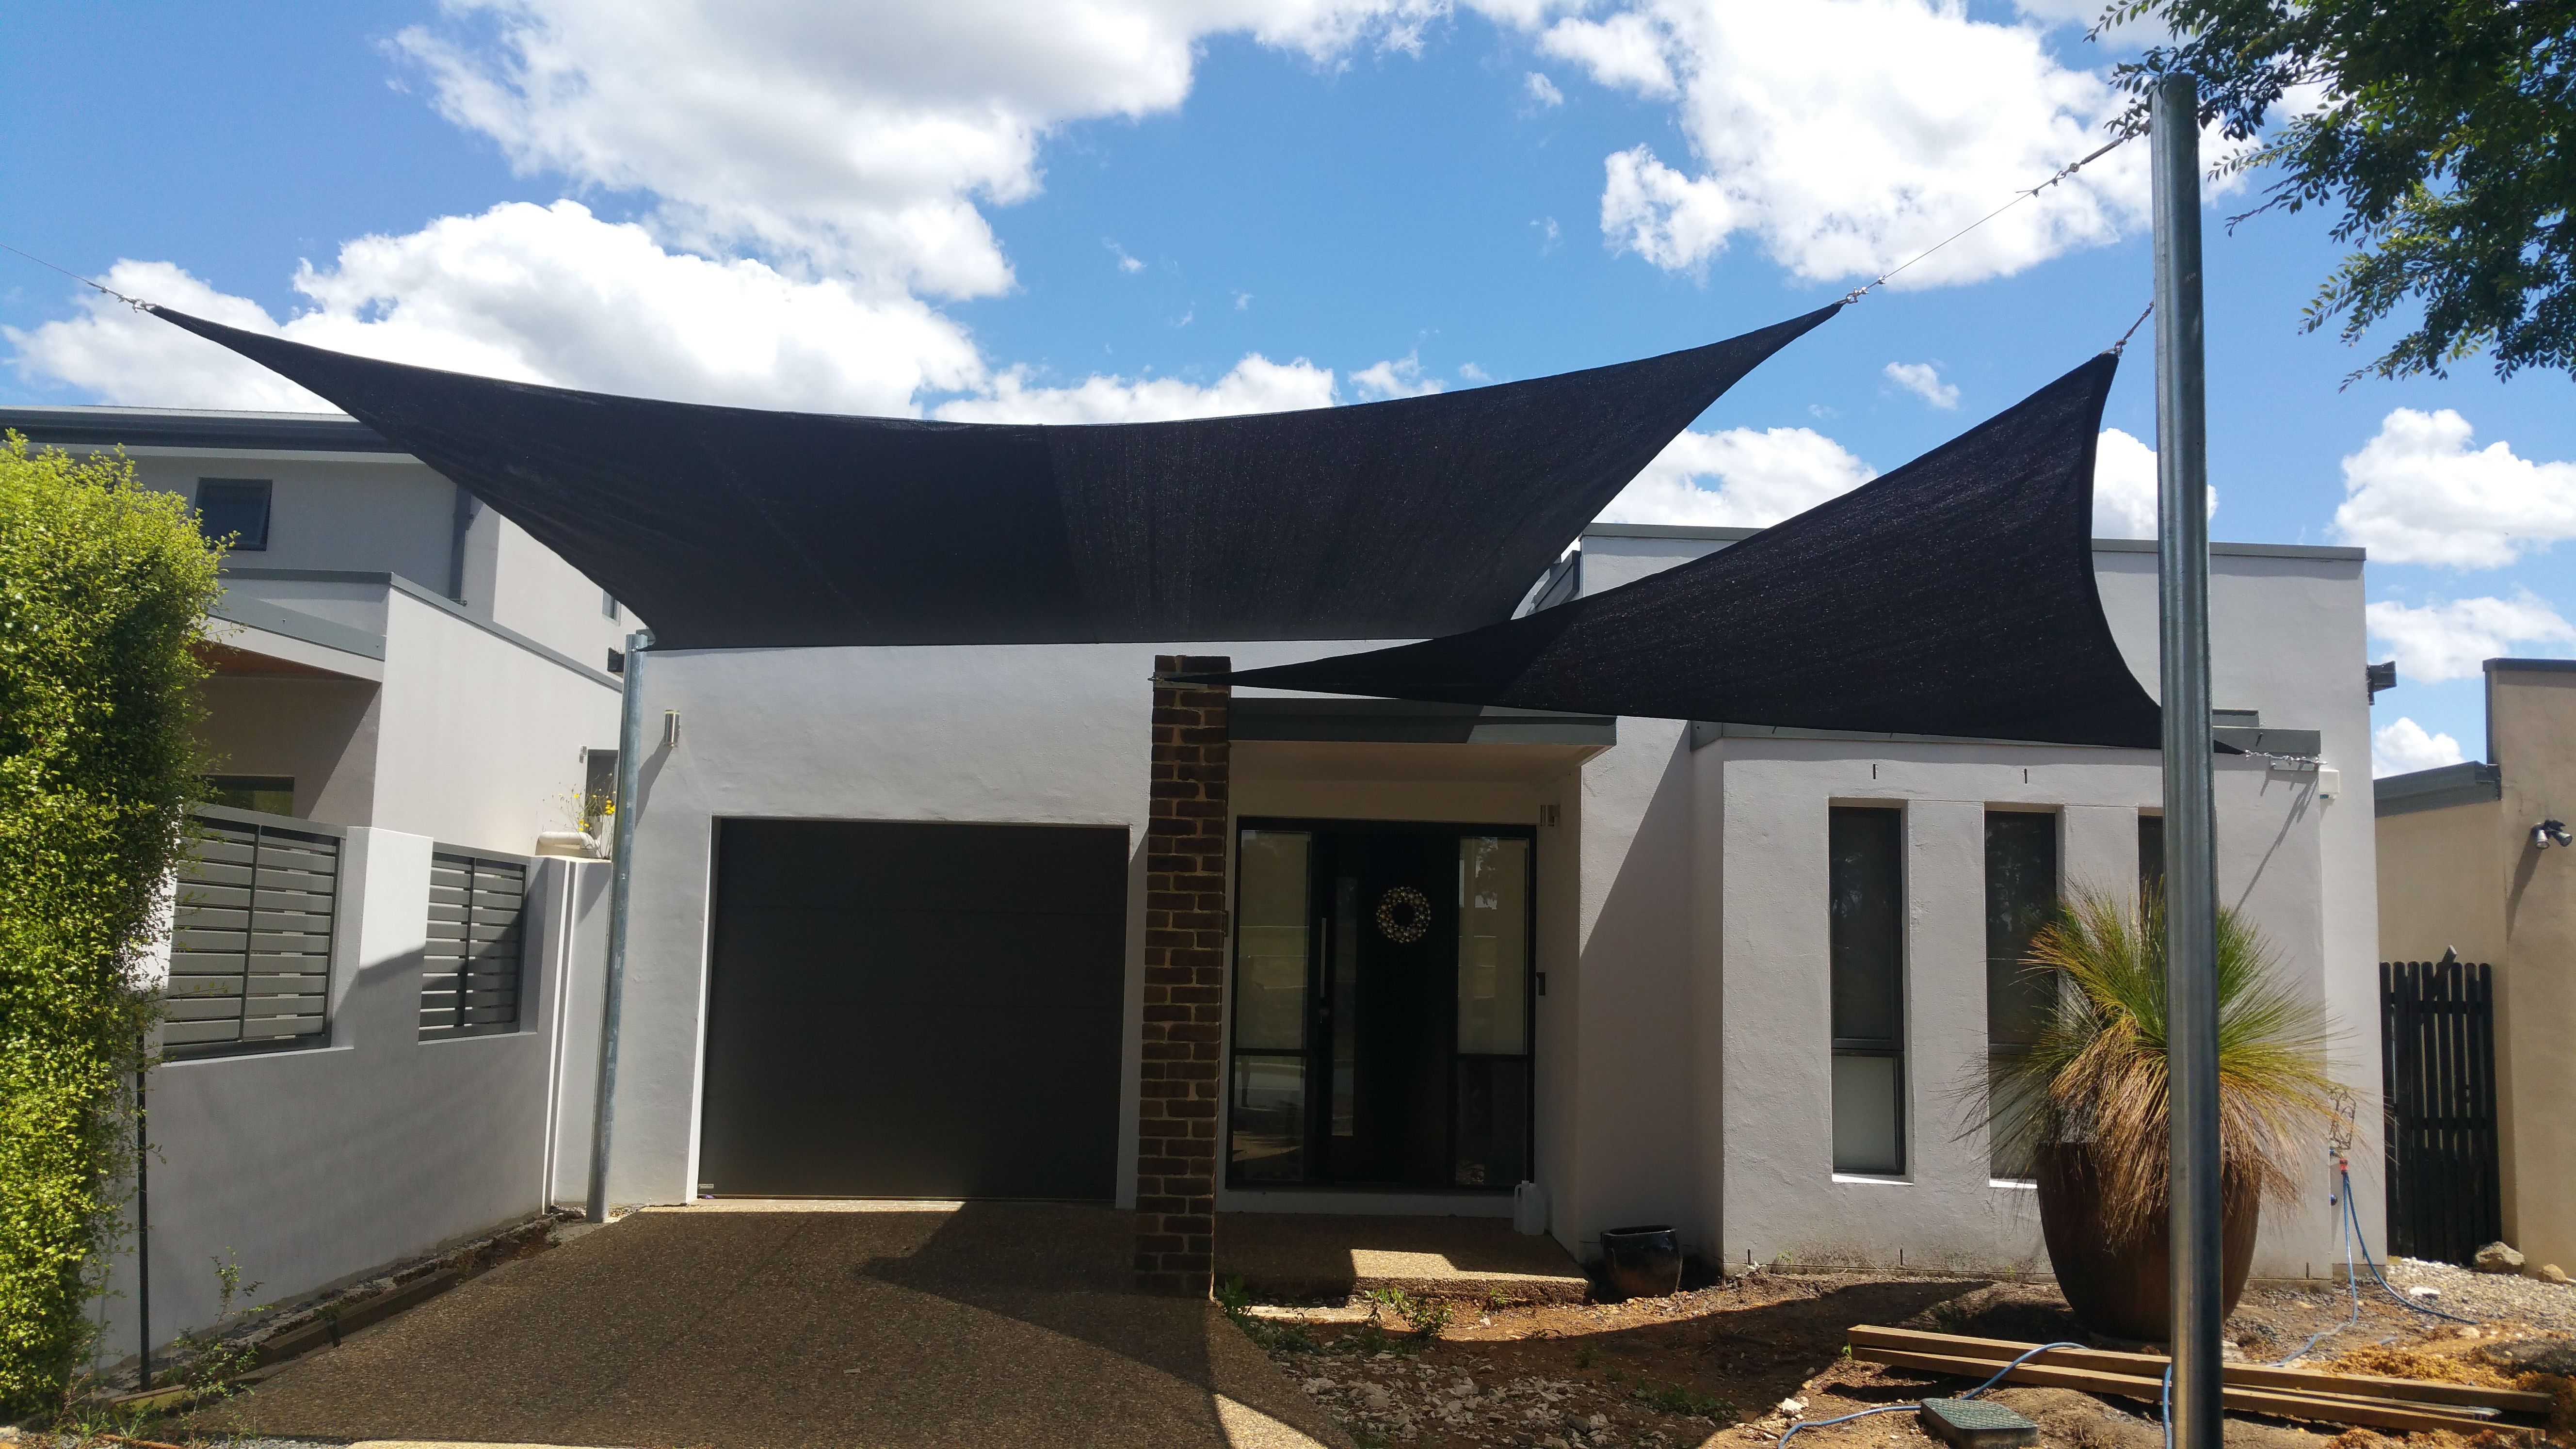 Rectangle 5mx6m And 5x5x5m Triangle Shady Lady Shade Sails Great Install By Our Customer Shade Sail Outdoor Decor Shady